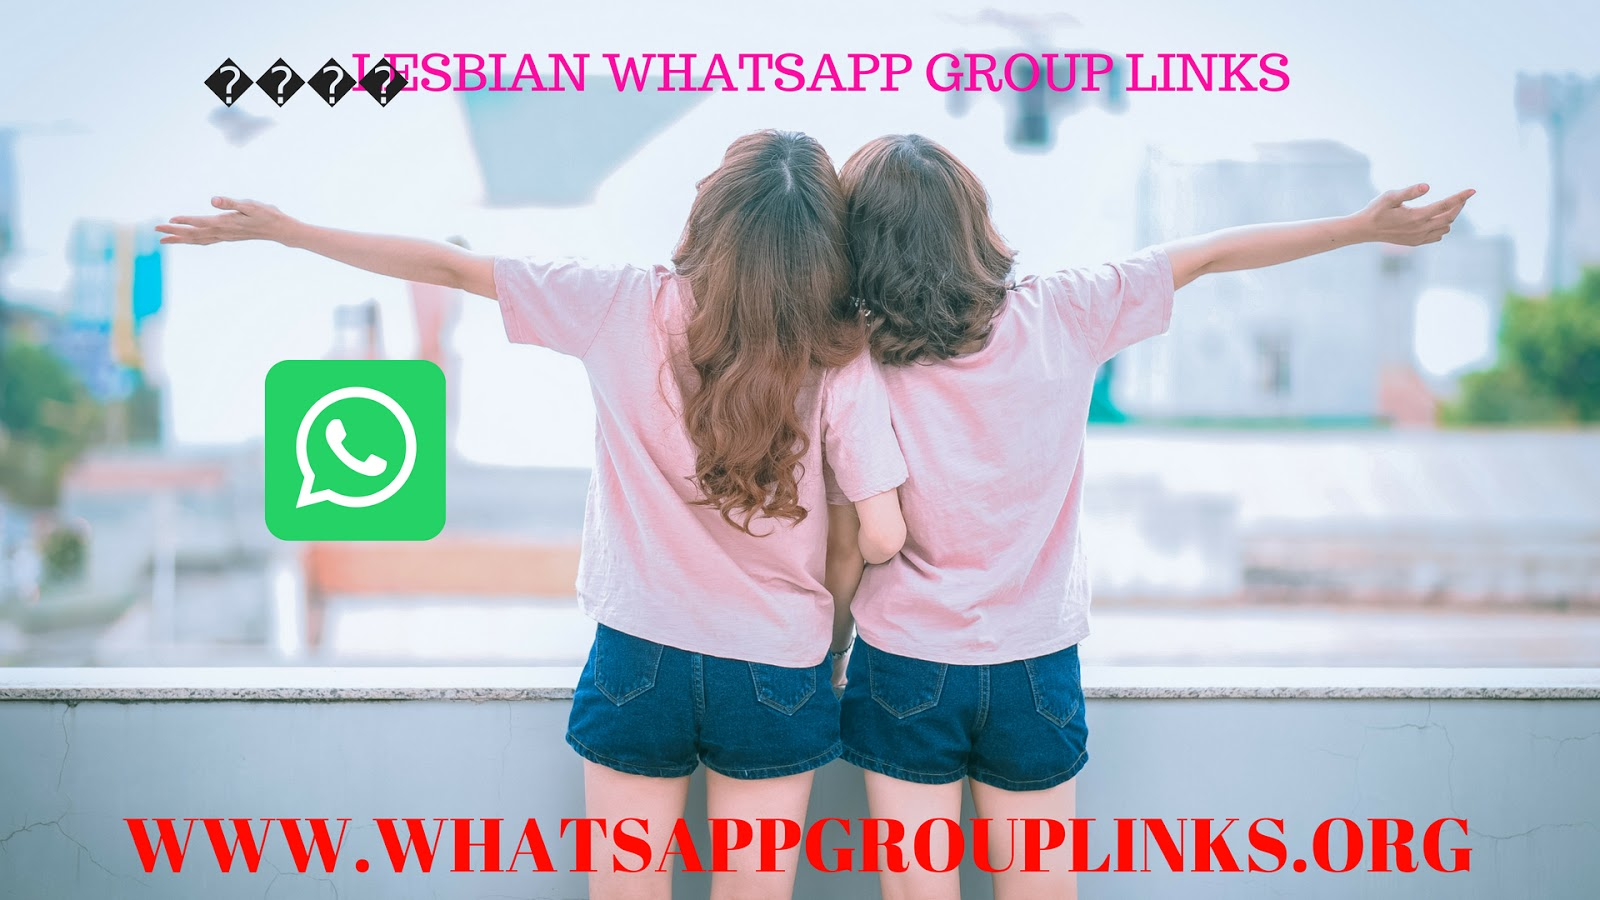 JOIN 200+ LESBIAN WHATSAPP GROUP LINKS LIST (18+ ONLY) - Whatsapp